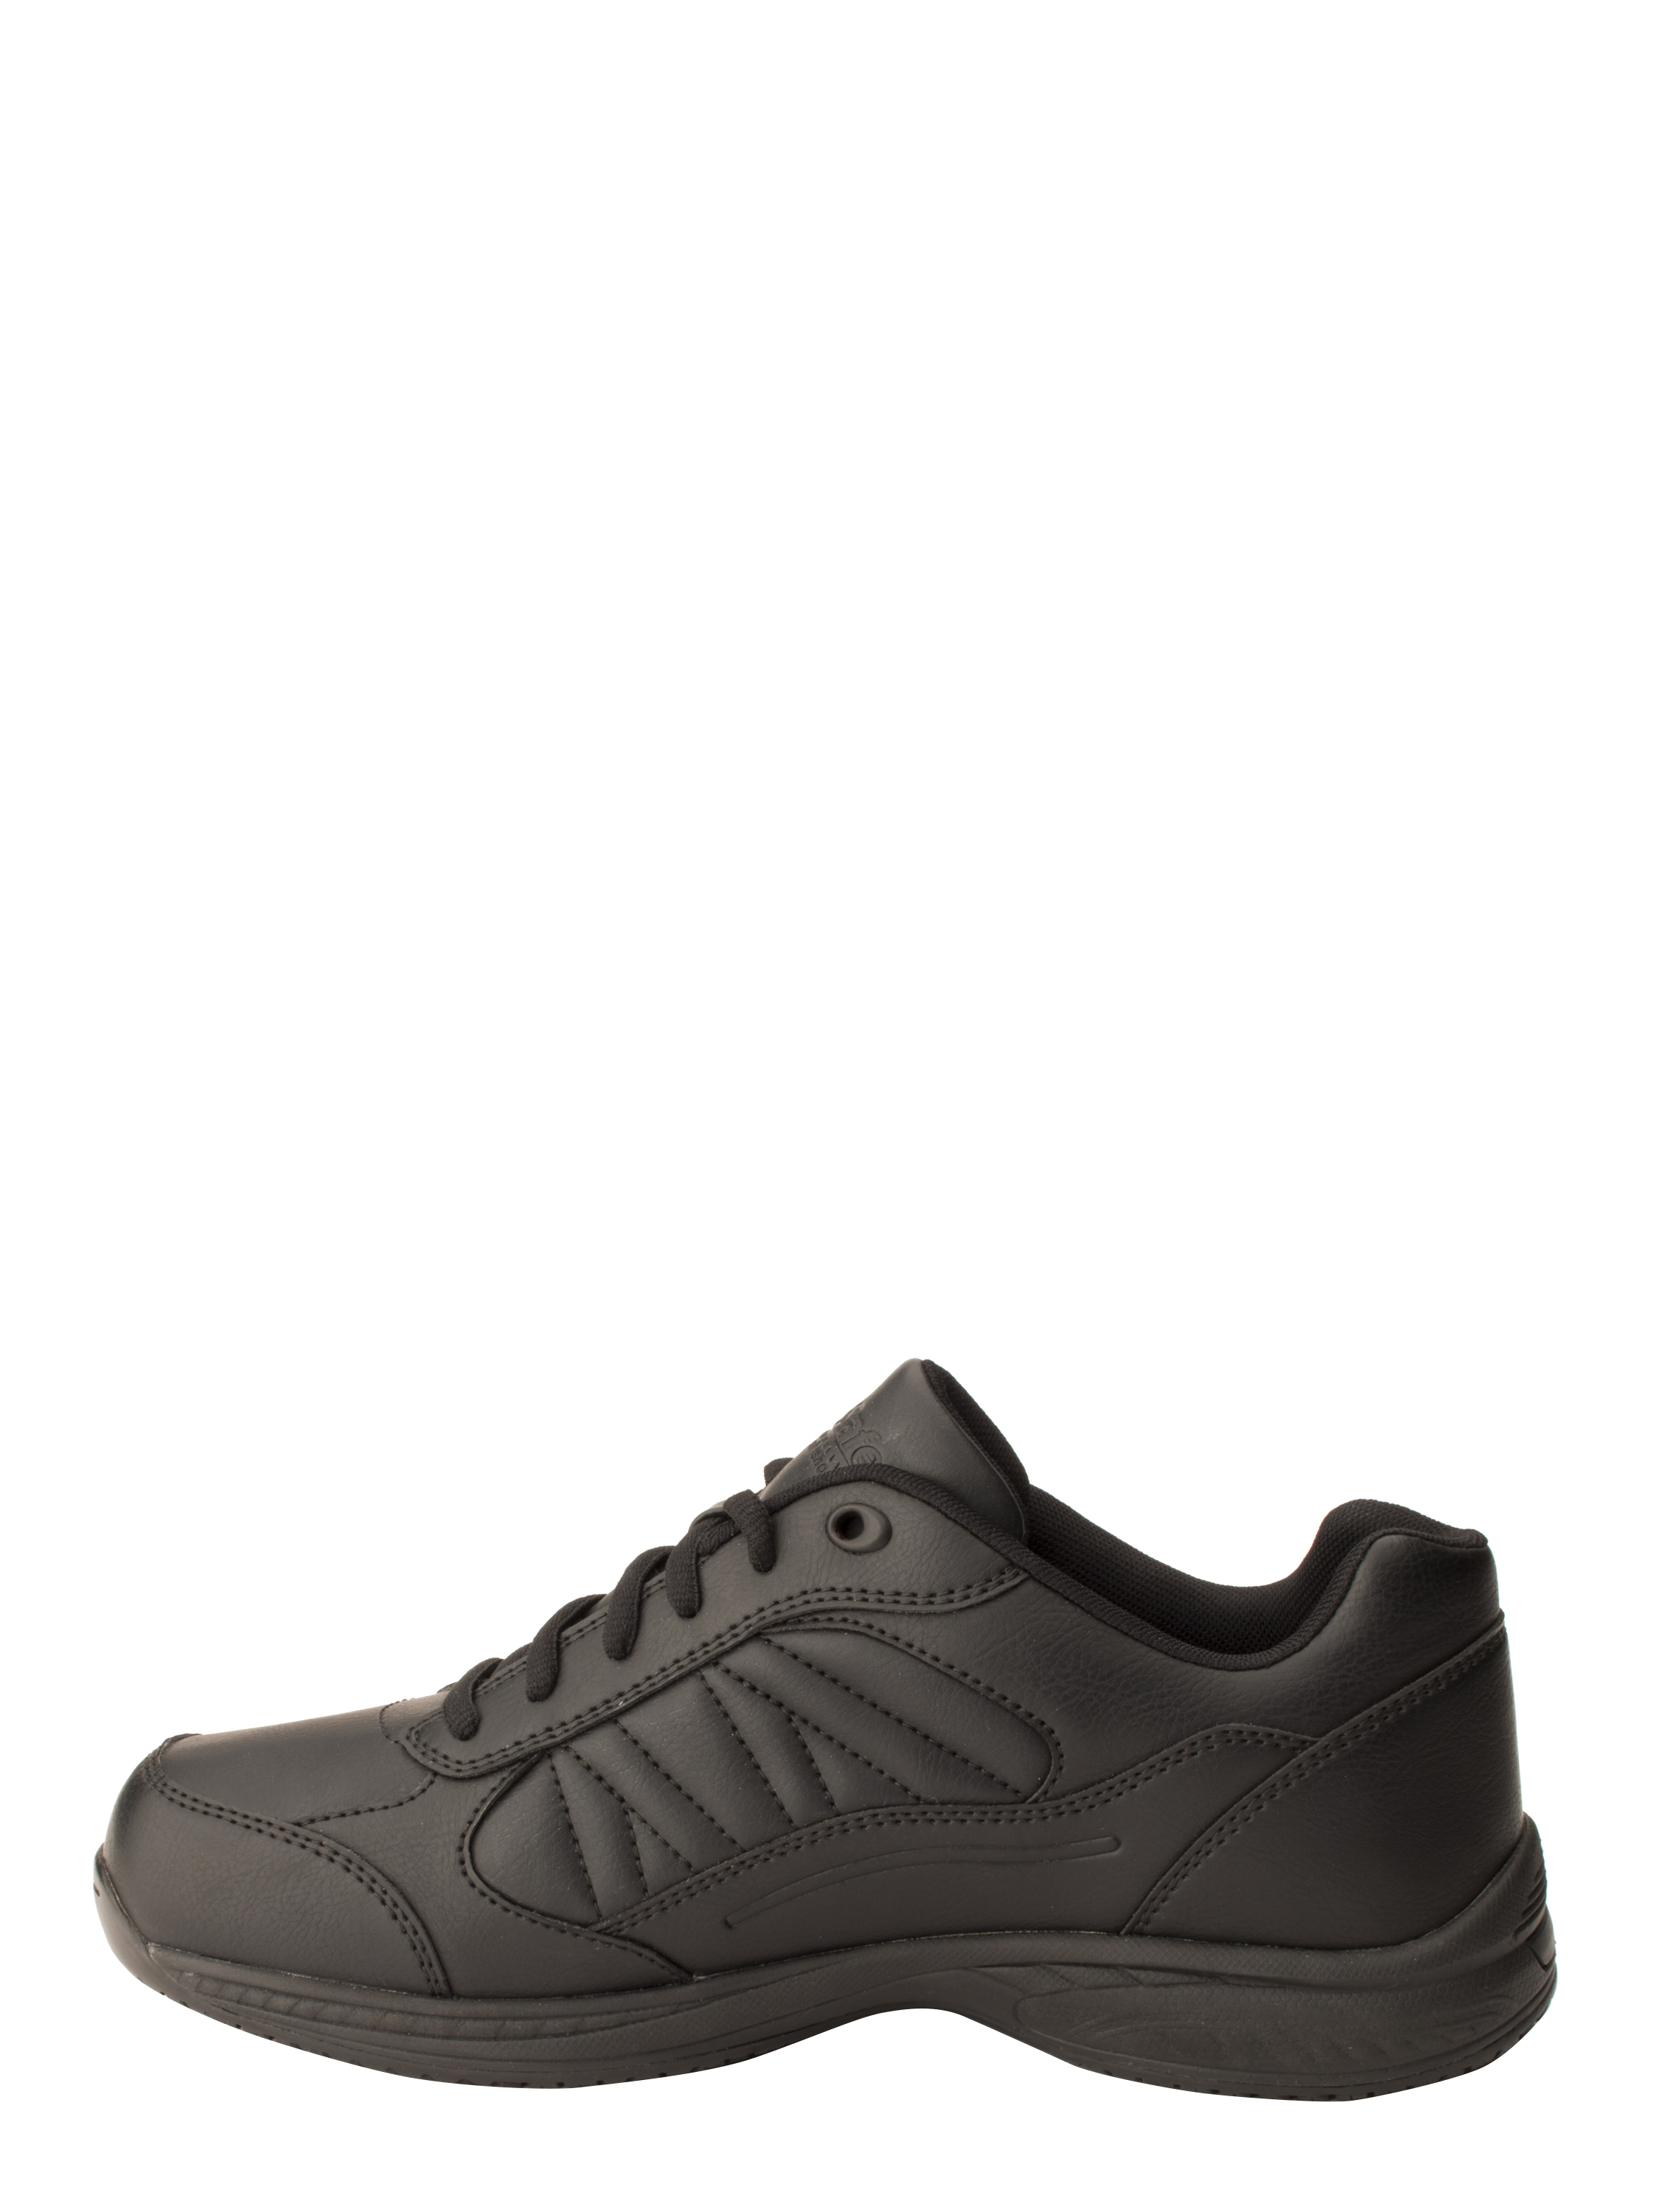 Tredsafe Men's Mario Slip-Resistant Athletic Shoe, Wide Width - Walmart.com